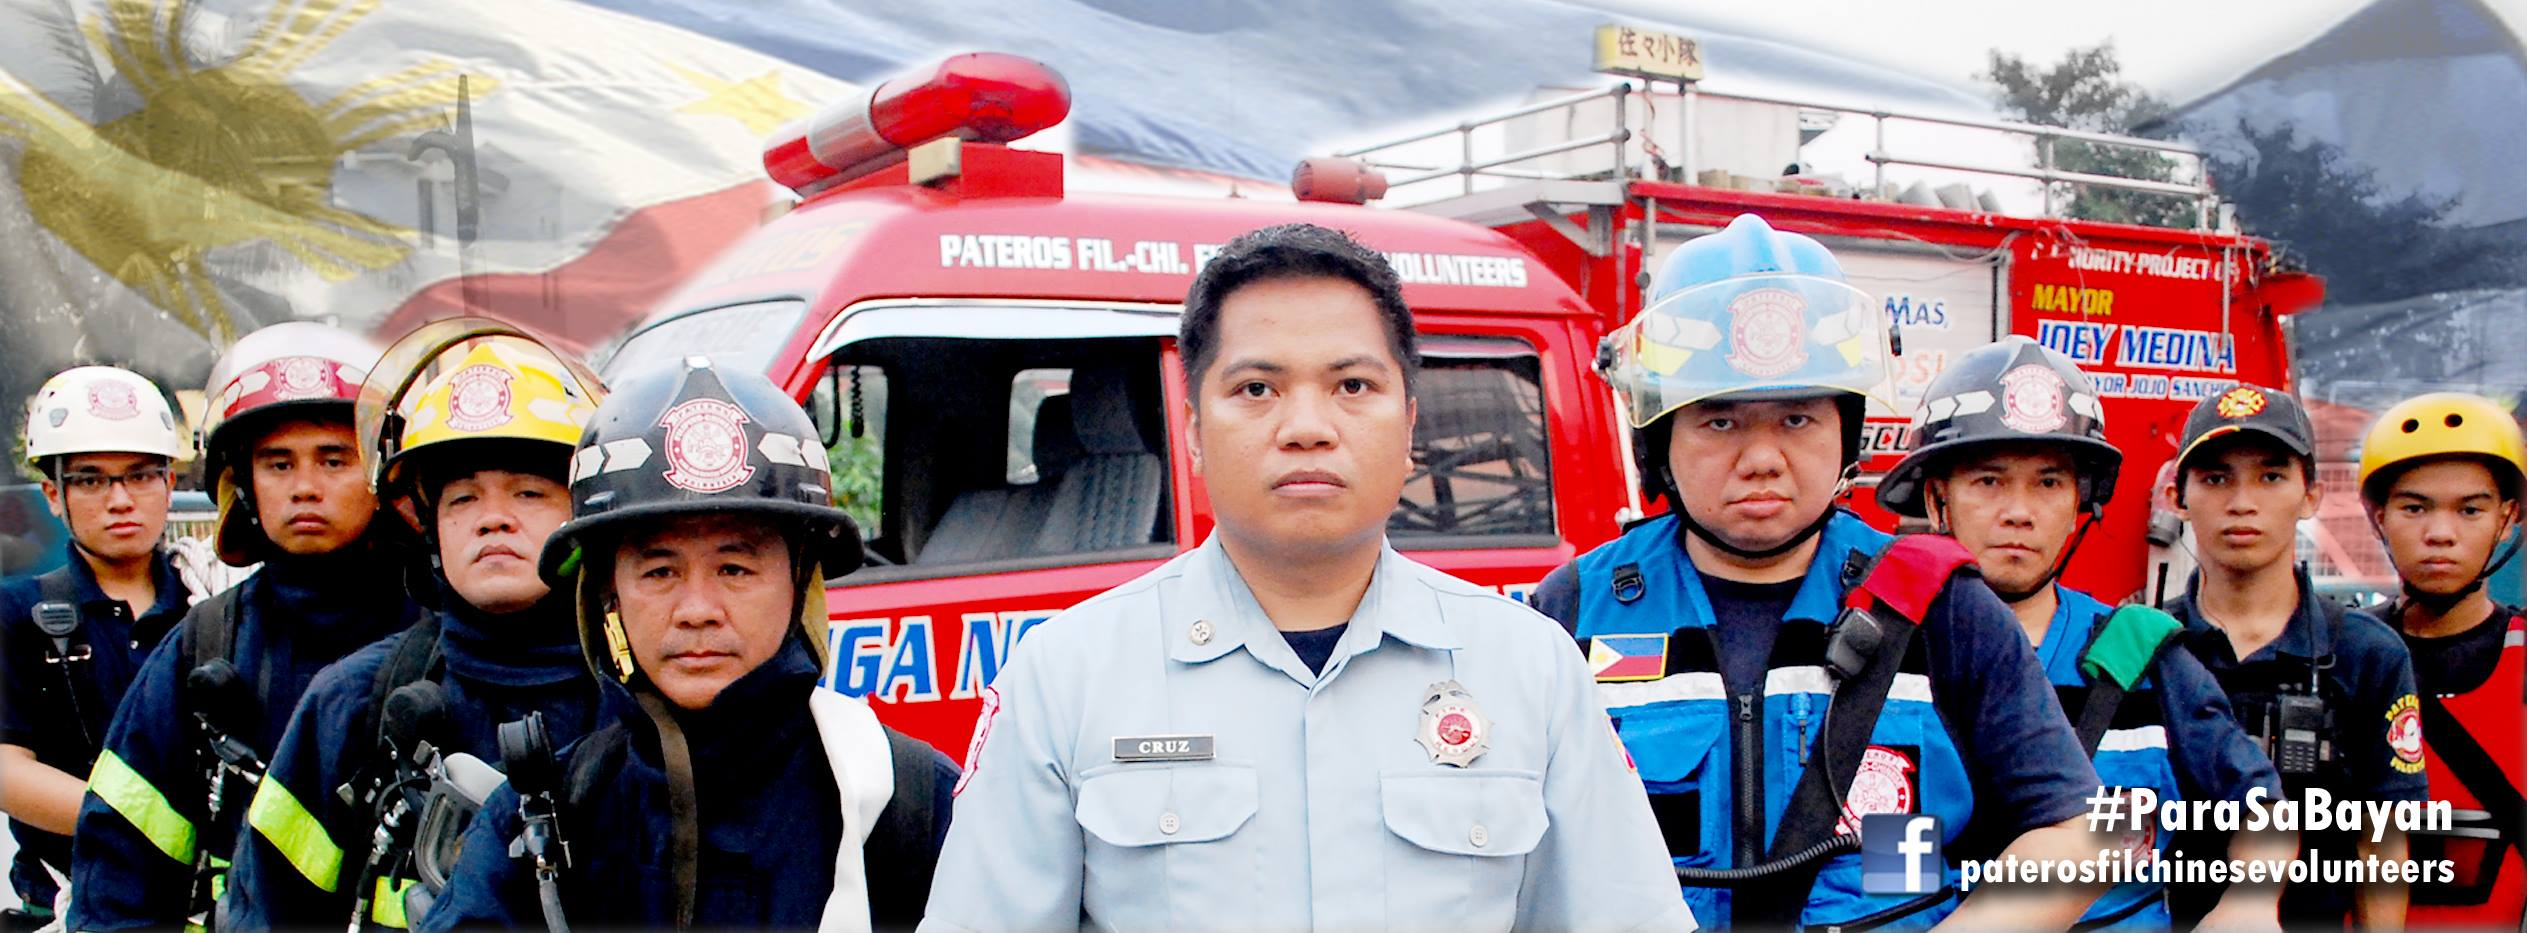 Pateros Volunteer Fire & Rescue Brigade from Philippines - 10th Year Anniversary | Emergency Live 5